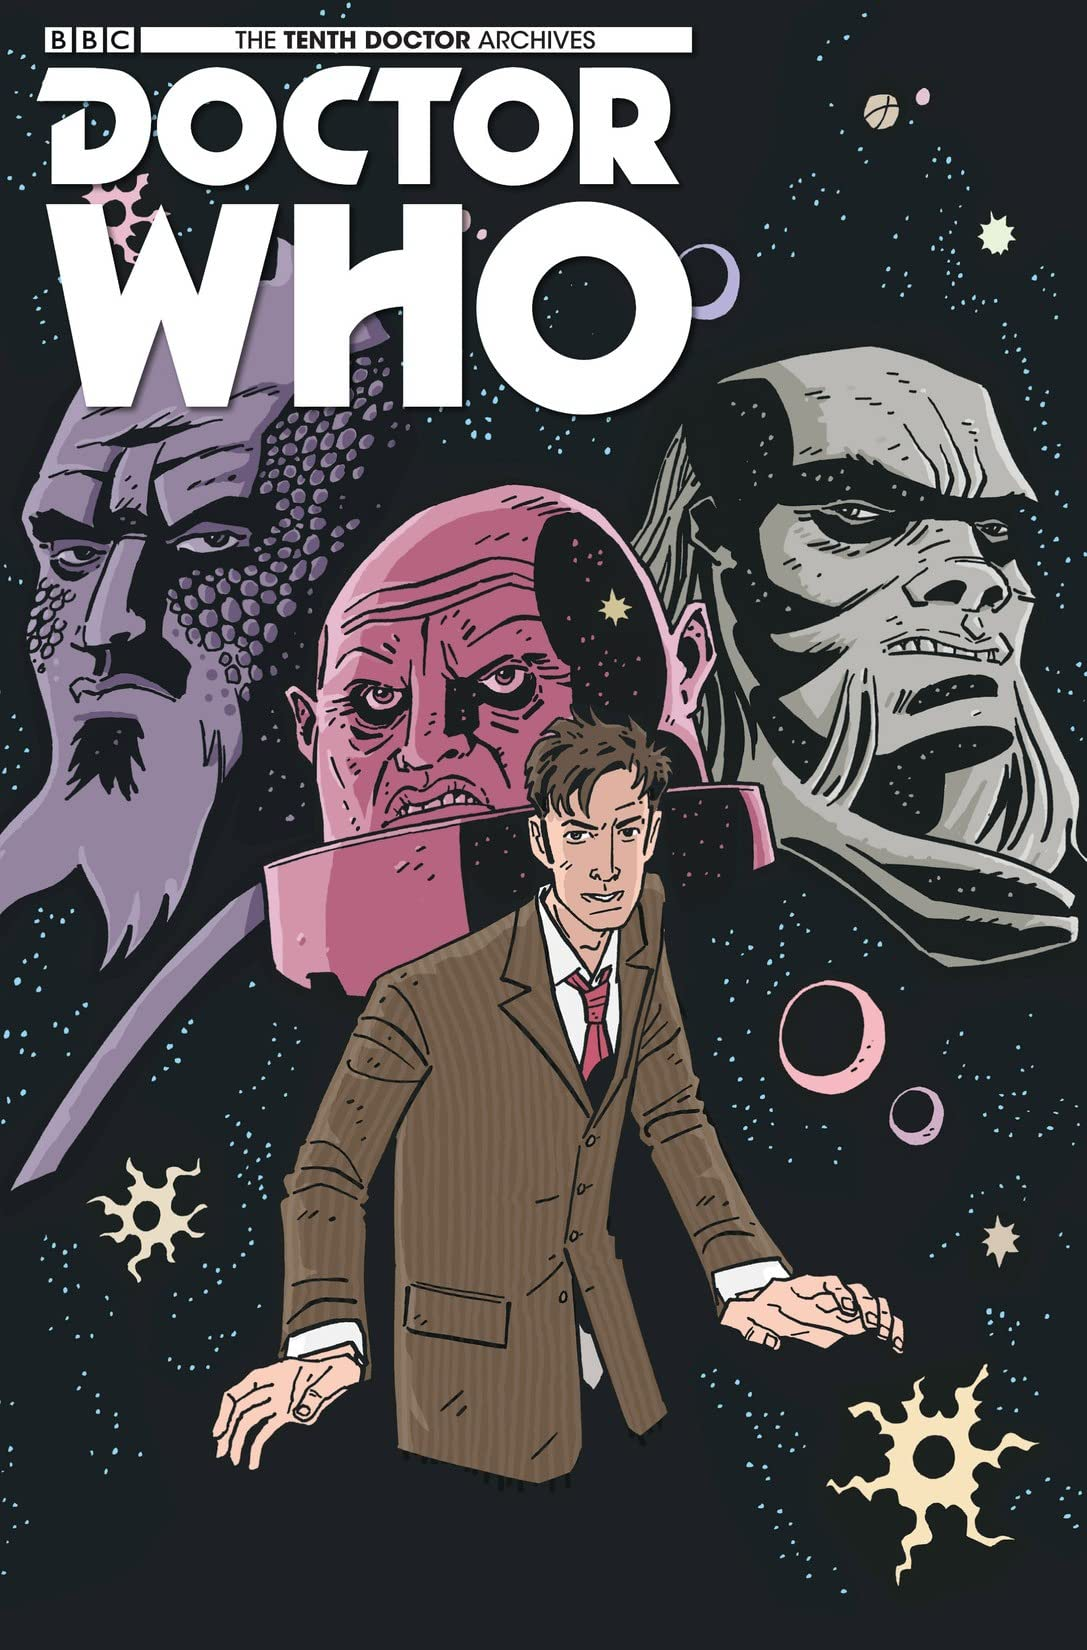 Doctor Who: The Tenth Doctor Archives #22